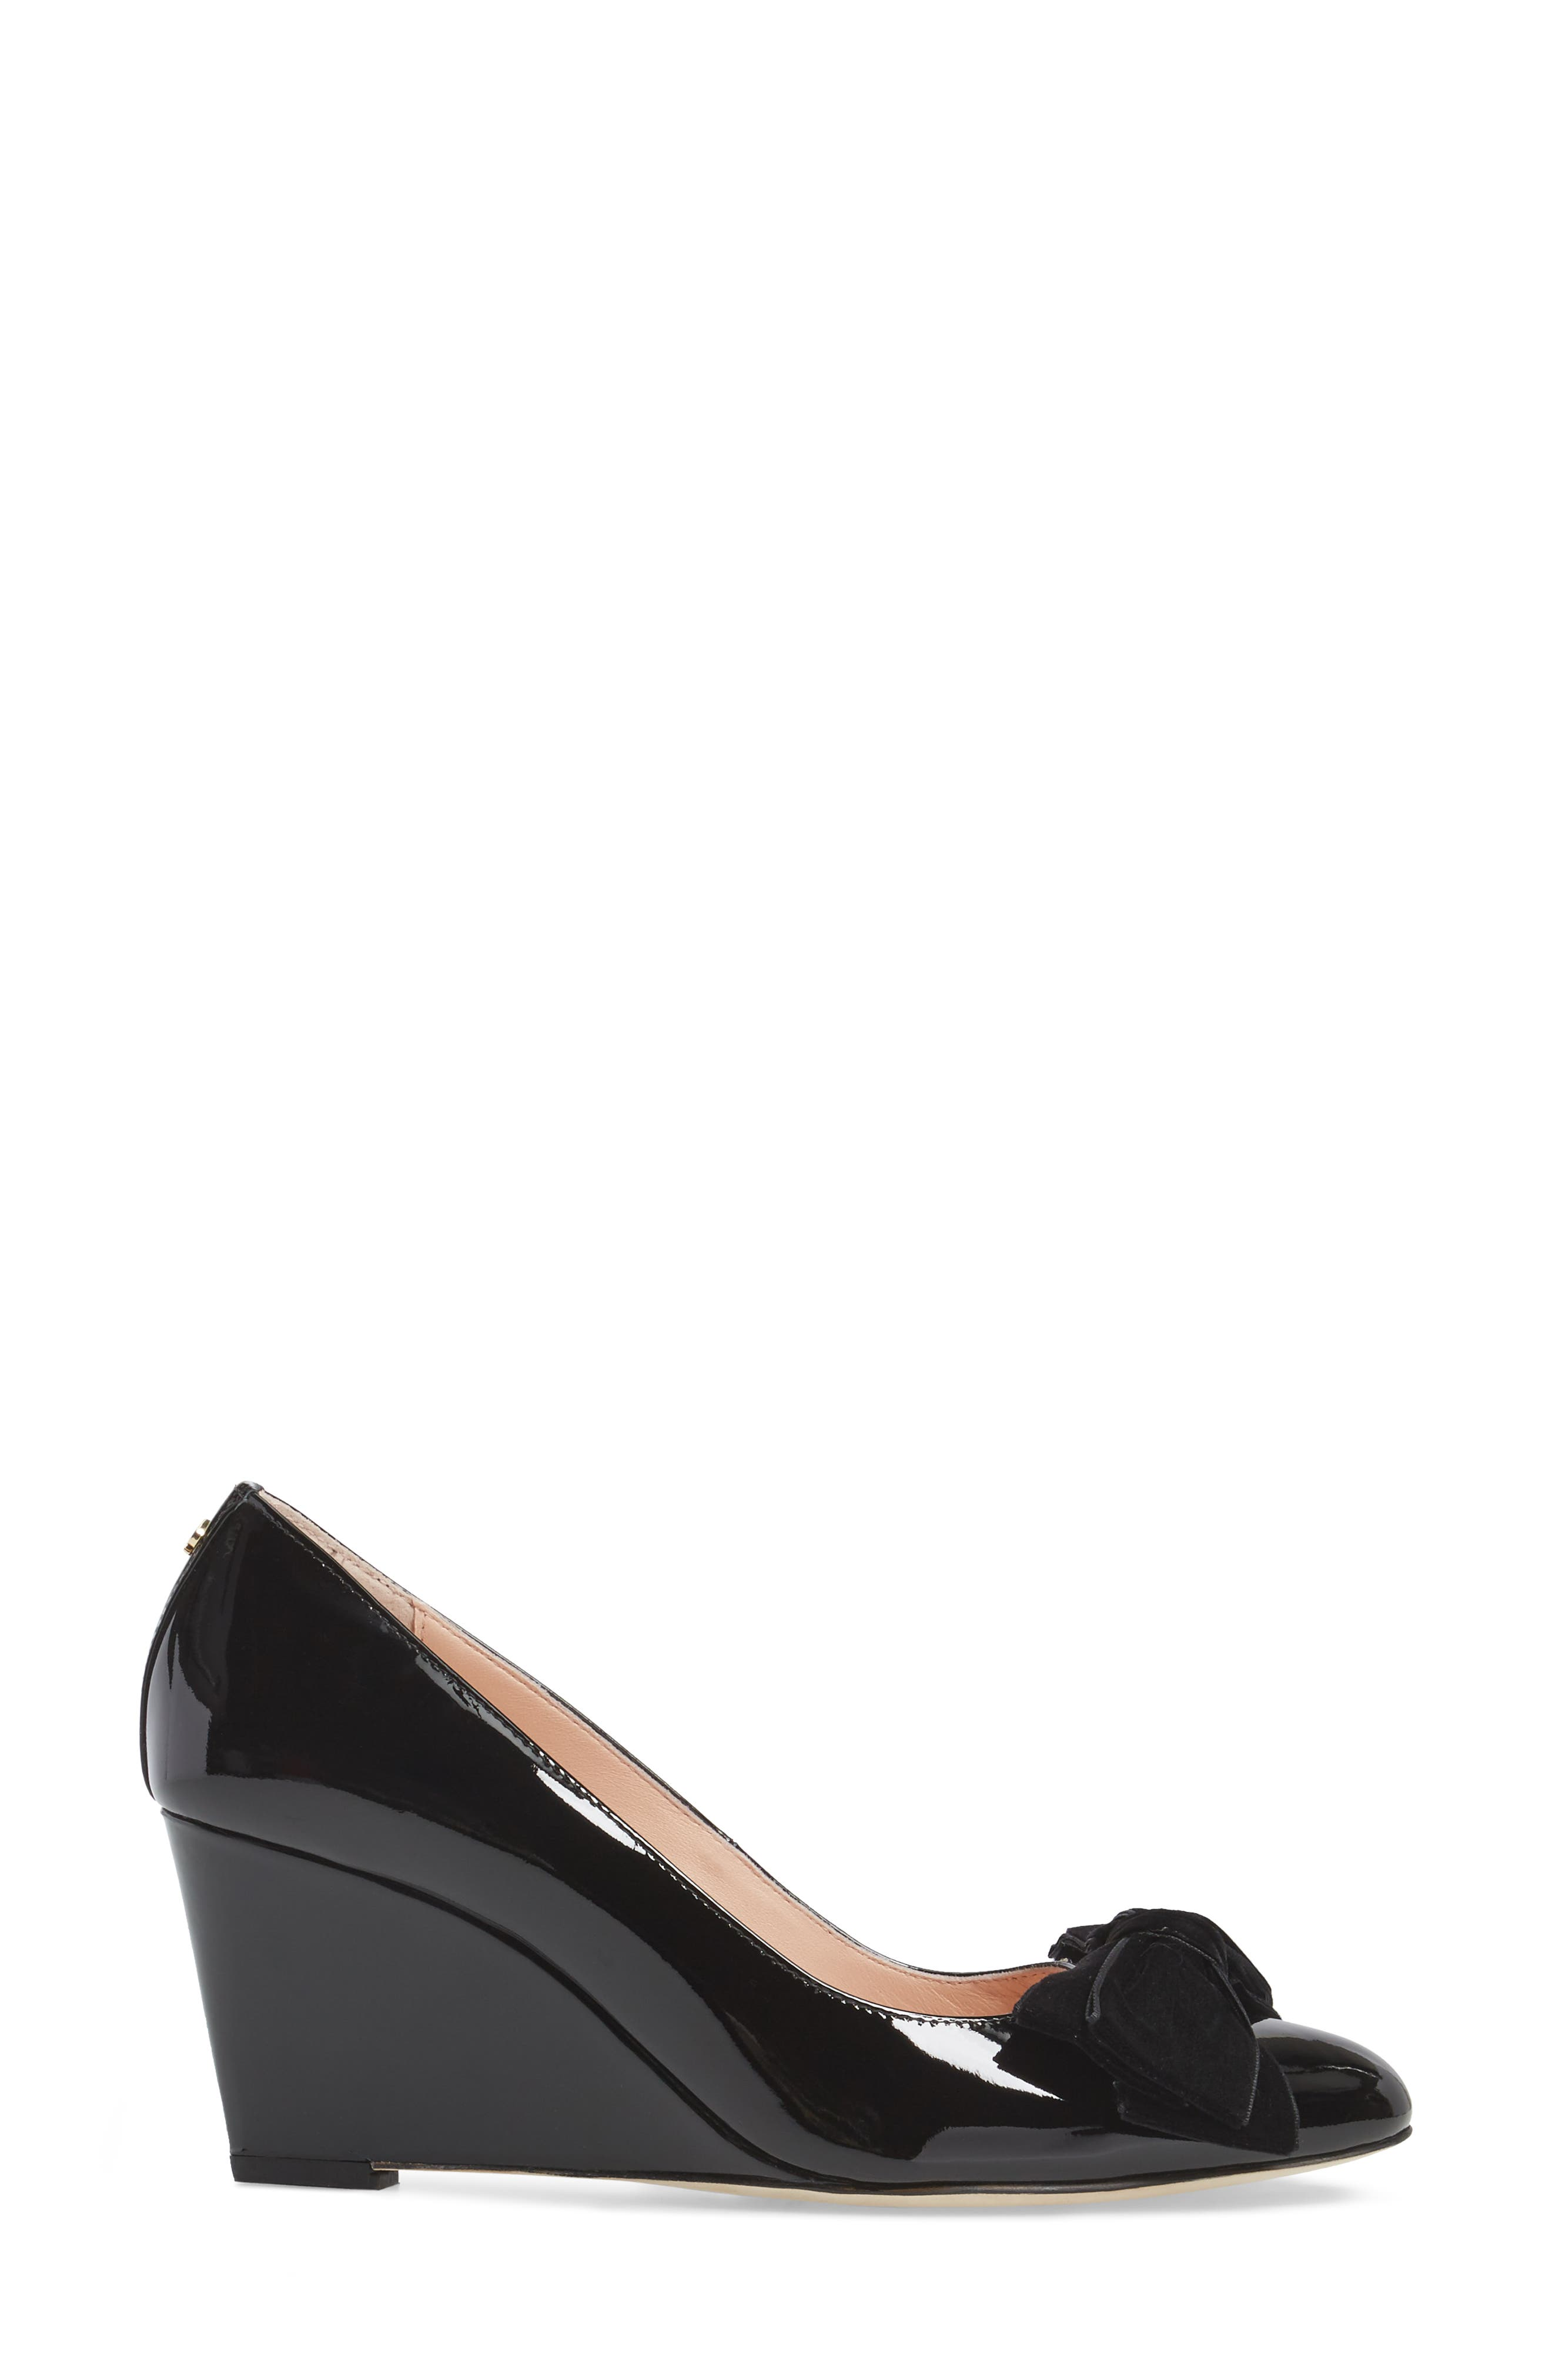 Alternate Image 3  - kate spade new york weller pump (Women)